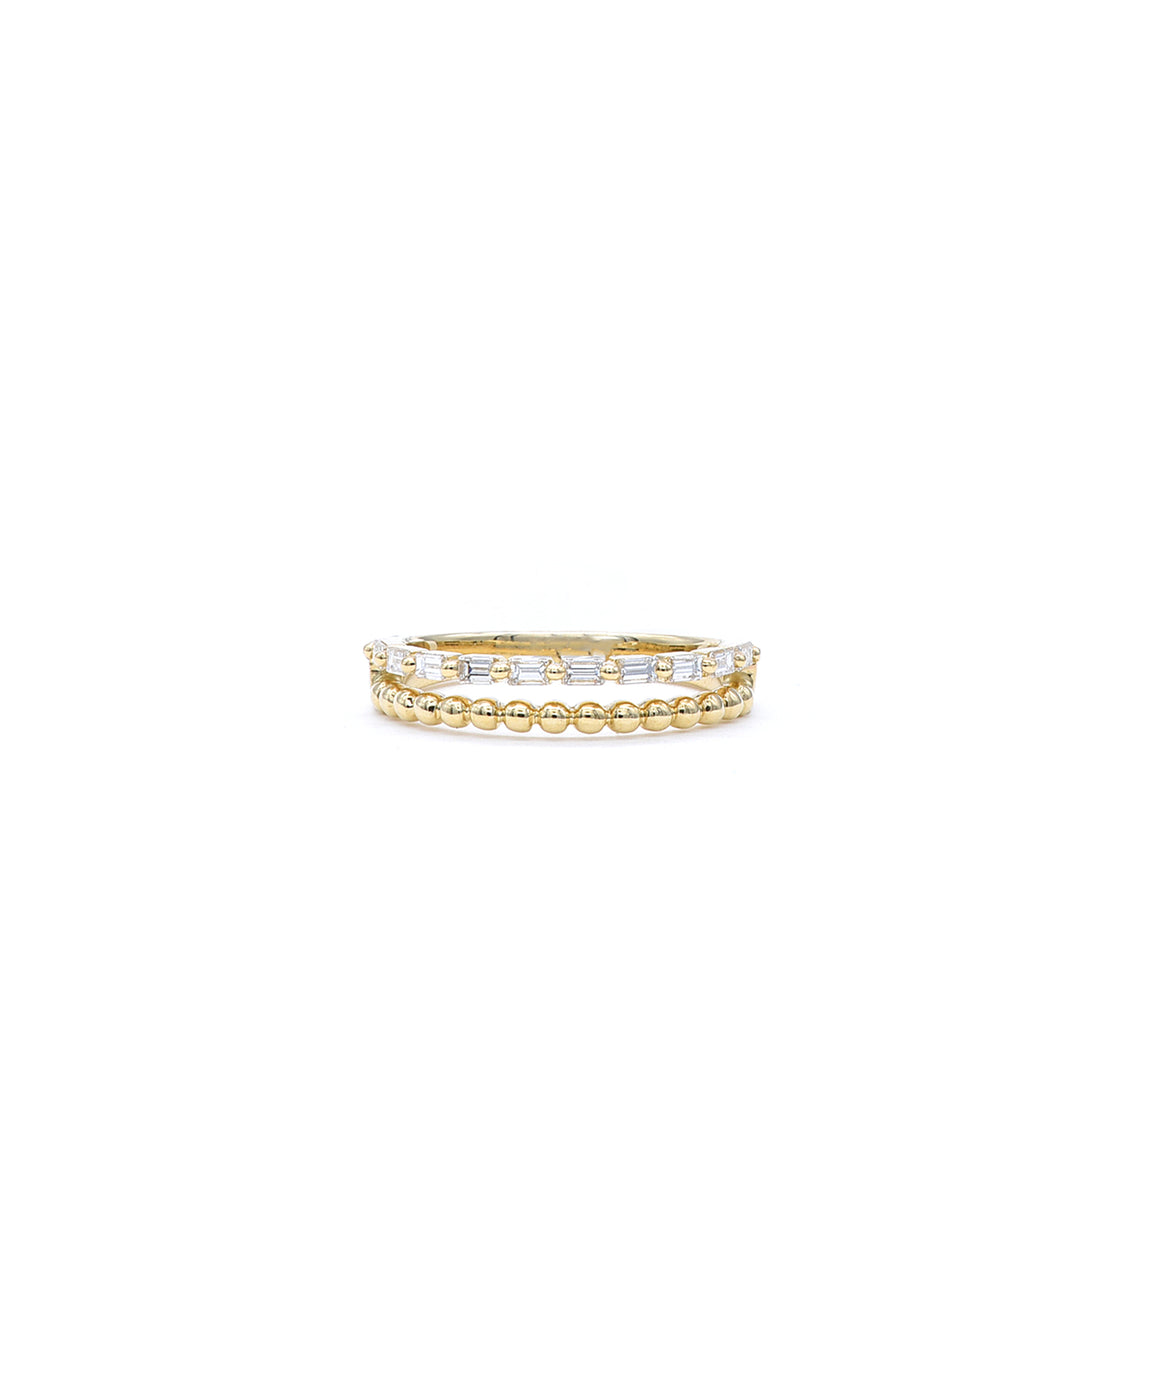 Baguette double band - Lesley Ann Jewels